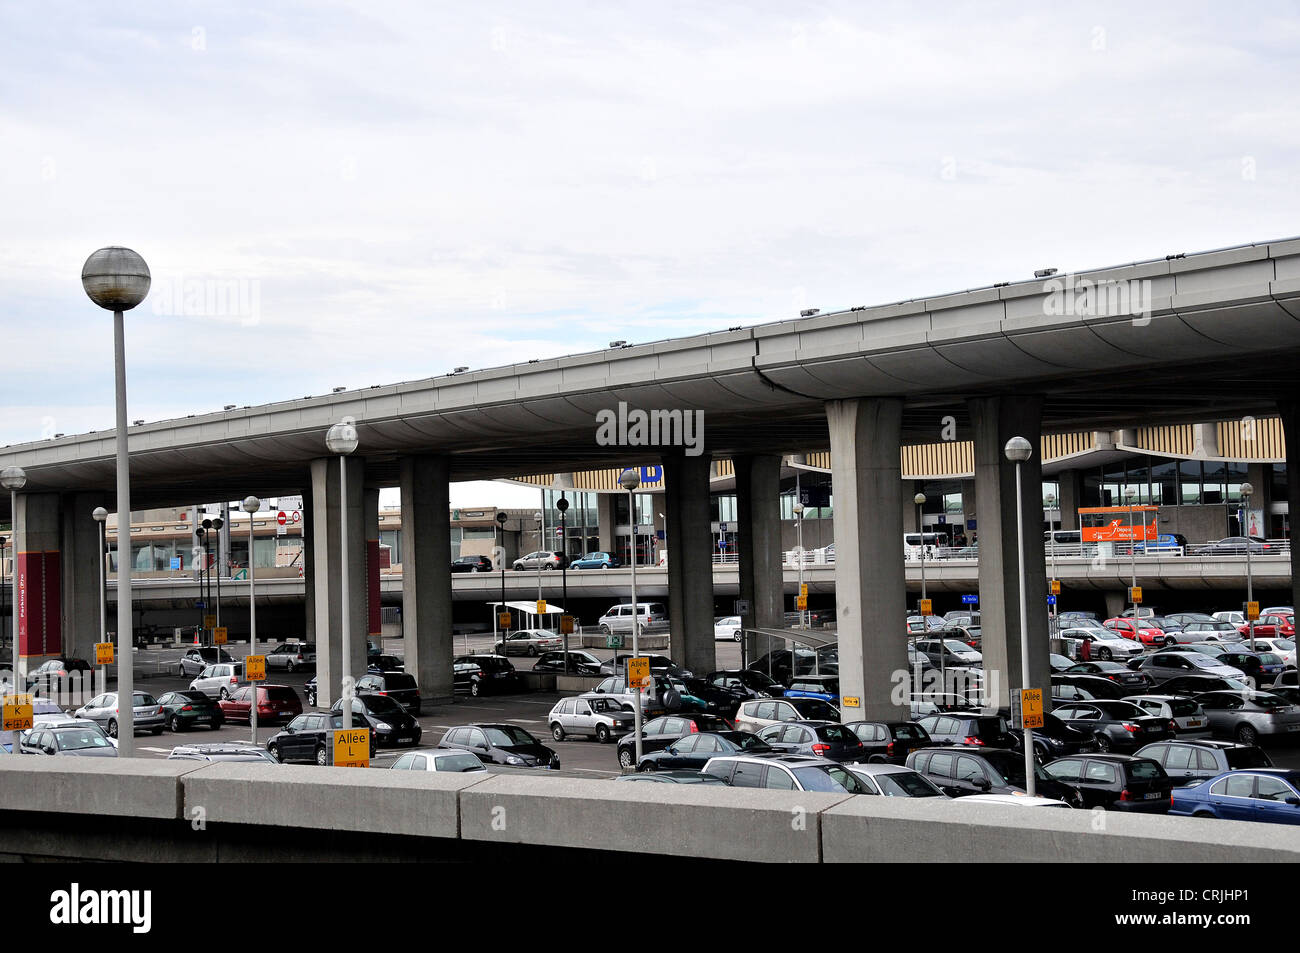 cars parking roissy charles de gaulle airport terminal 2 paris france stock photo royalty free. Black Bedroom Furniture Sets. Home Design Ideas